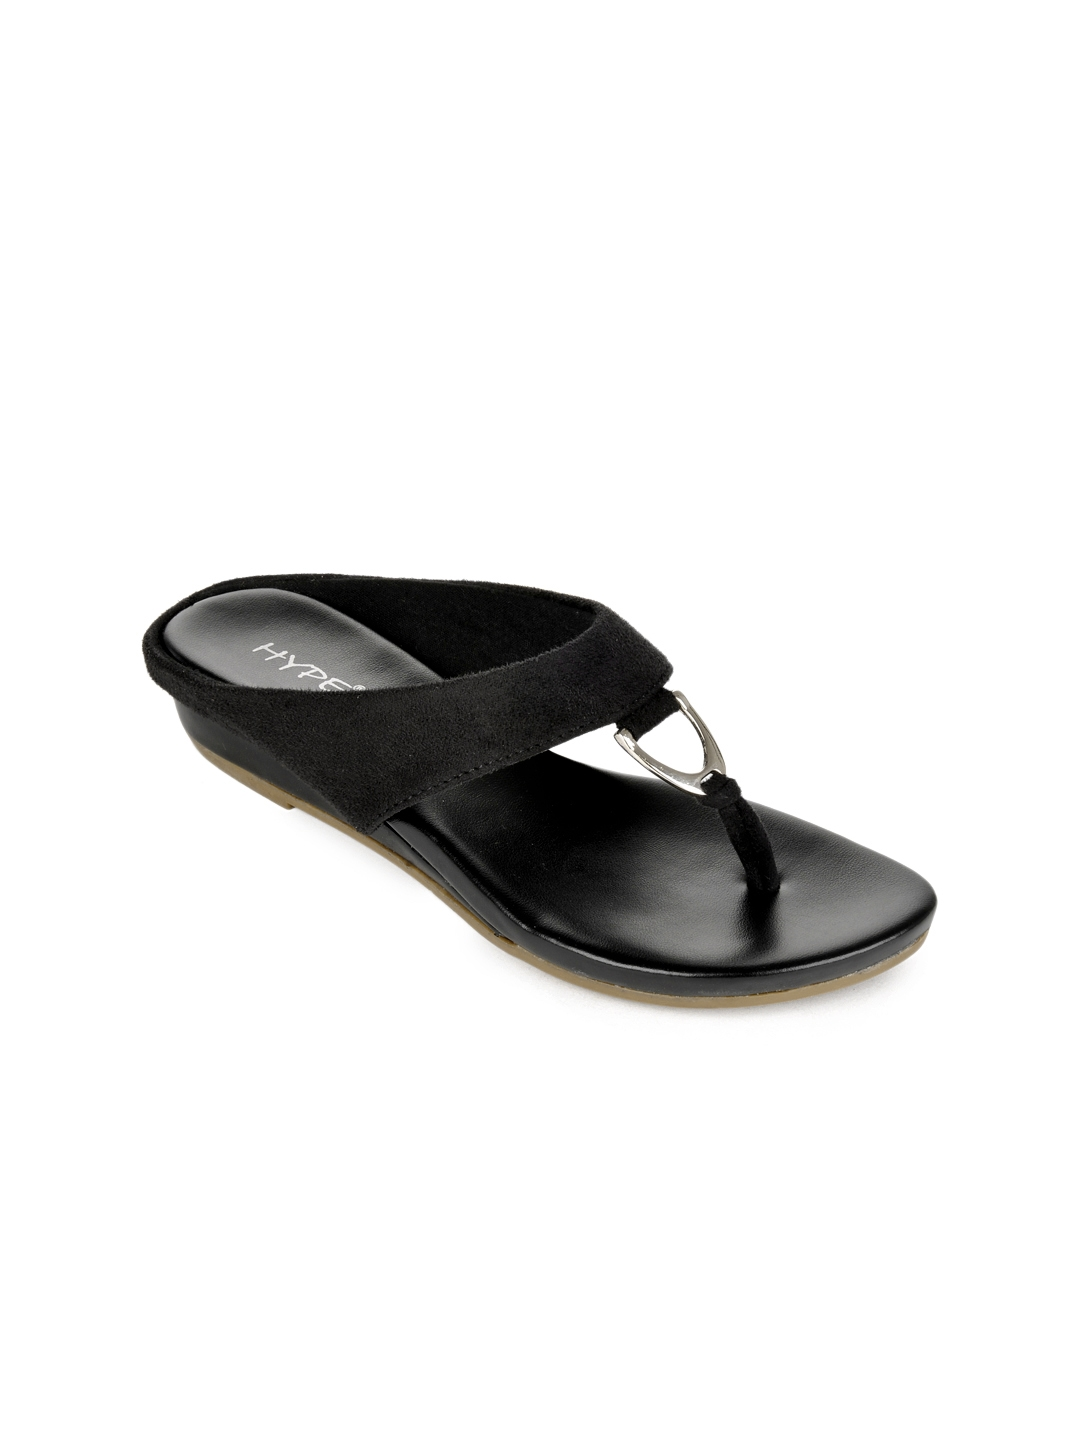 Womens sandals hype